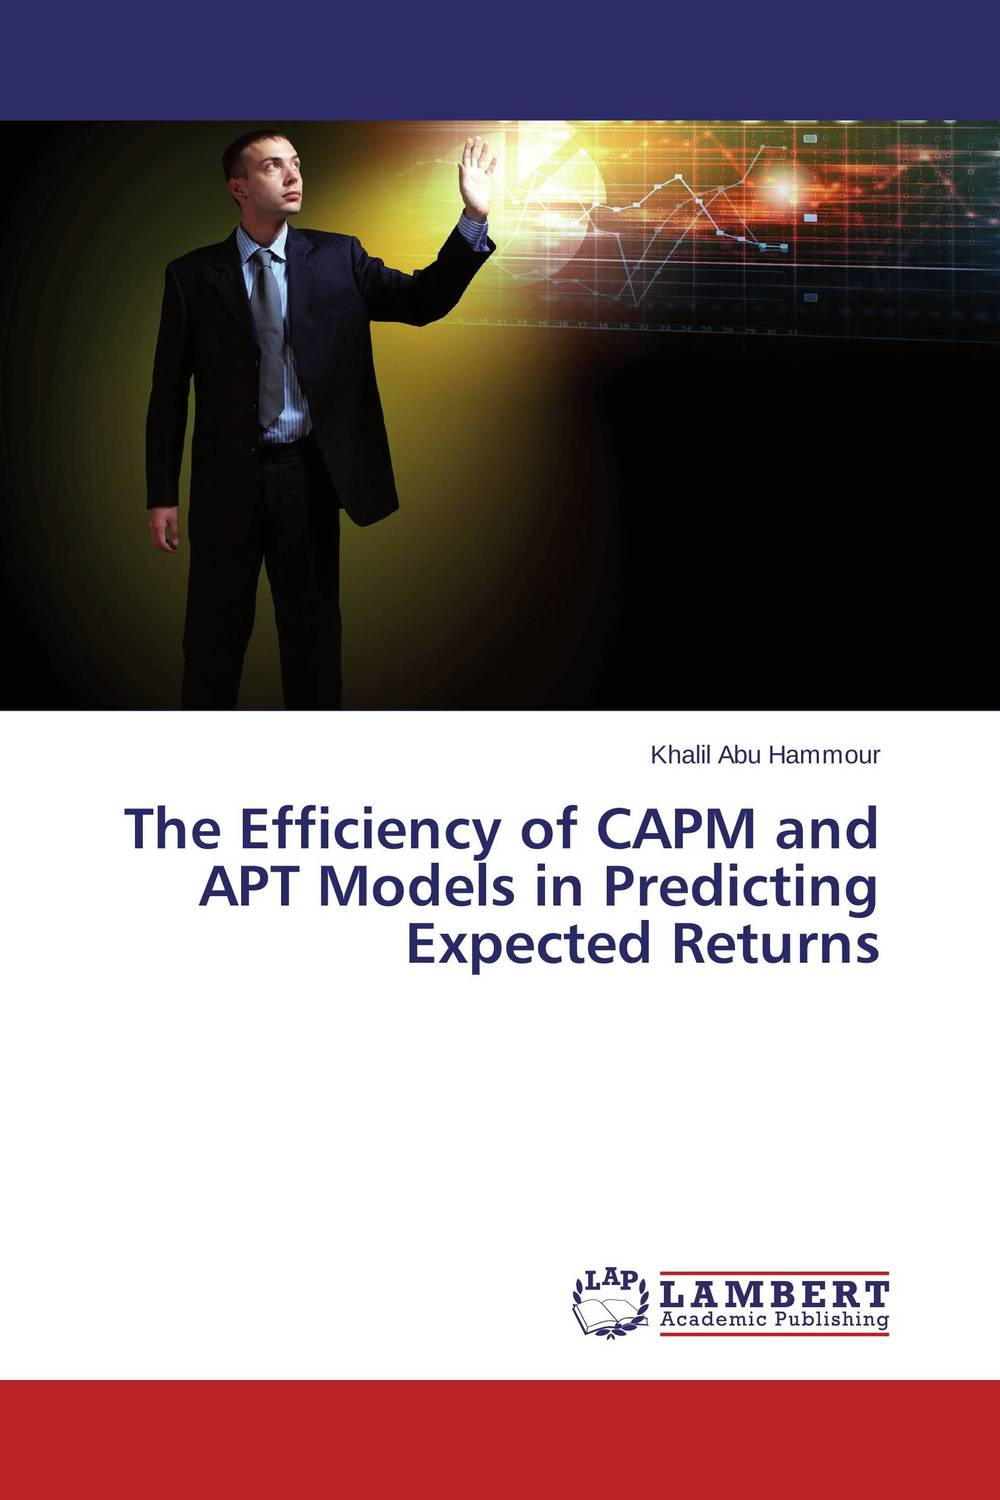 The Efficiency of CAPM and APT Models in Predicting Expected Returns